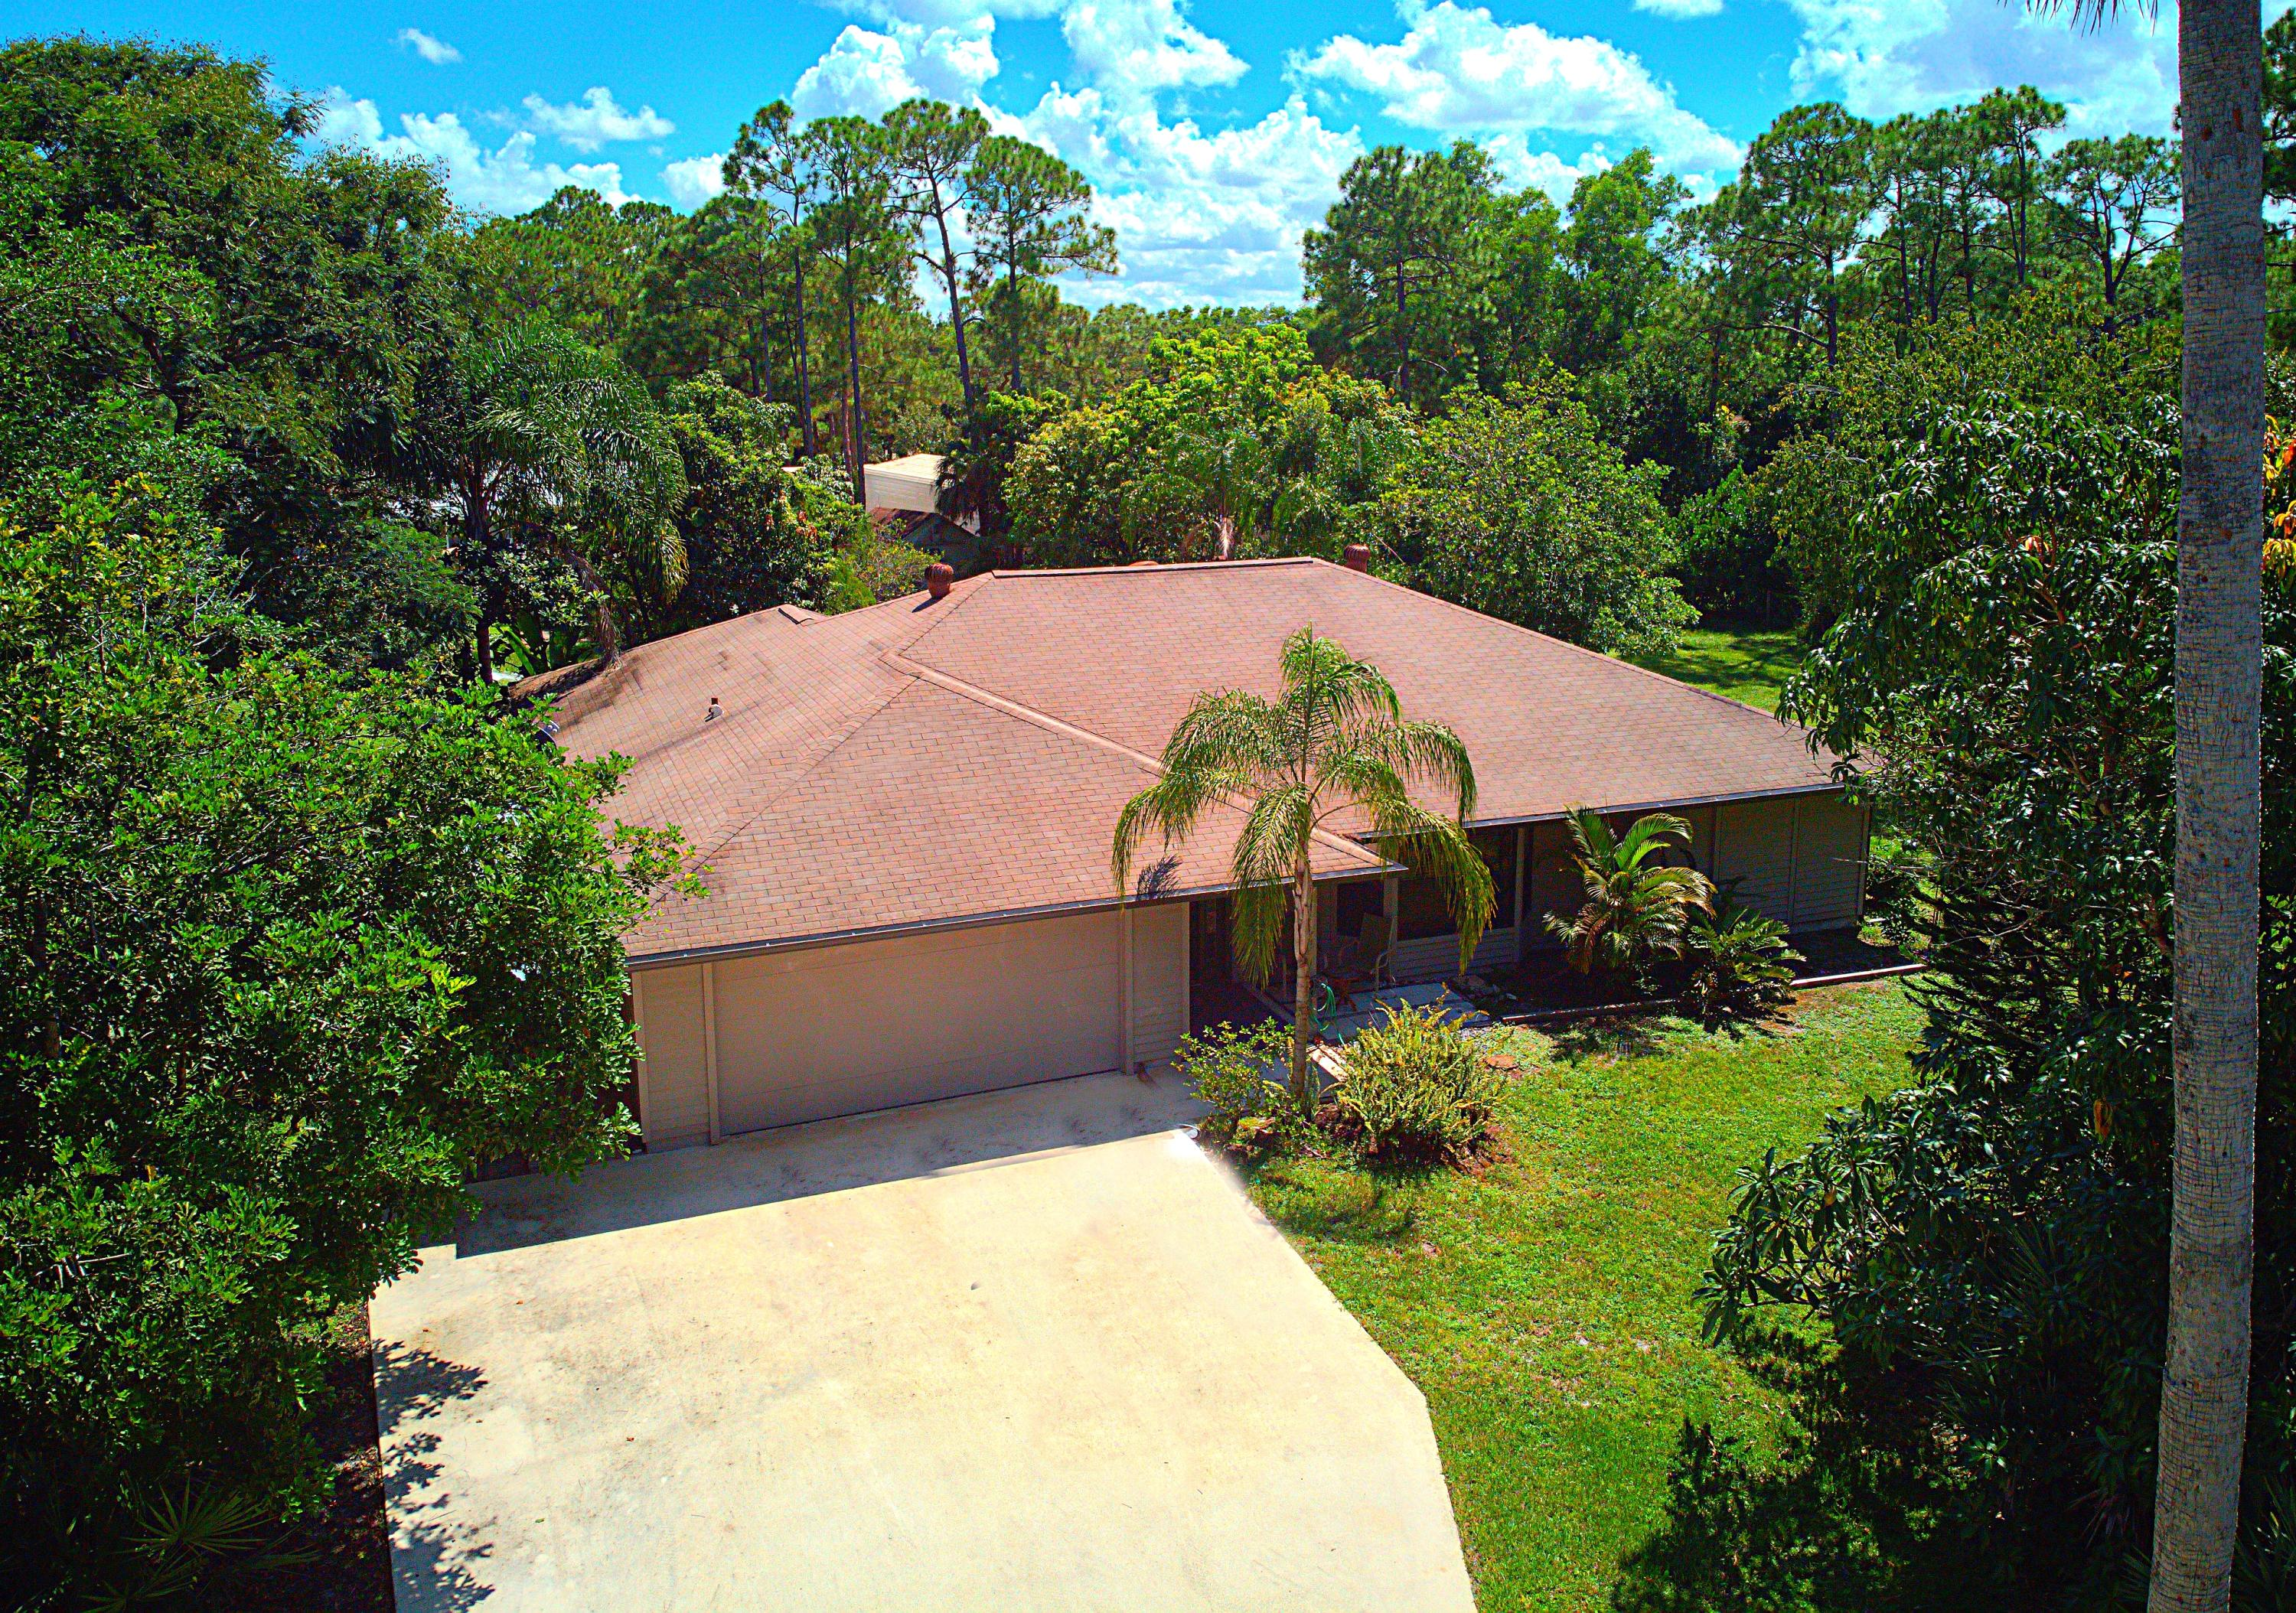 ESCAPE TO YOUR PRIVATE ISLAND OASIS! Amazing, private, salt water pool residence in Jupiter Farms with salt water softener. Kitchen all remodeled. Nestled on well over an acre of fruit trees and lush landscaping. Escape the hustle bustle in this SANCTUARY while taking a short ride to shopping, schools, turnpike , 95 and beaches. A+ rates schools RIVERBEND PARK! Hike, bike, canoe, kayak. All impact windows and doors! Dead end street, no through traffic.